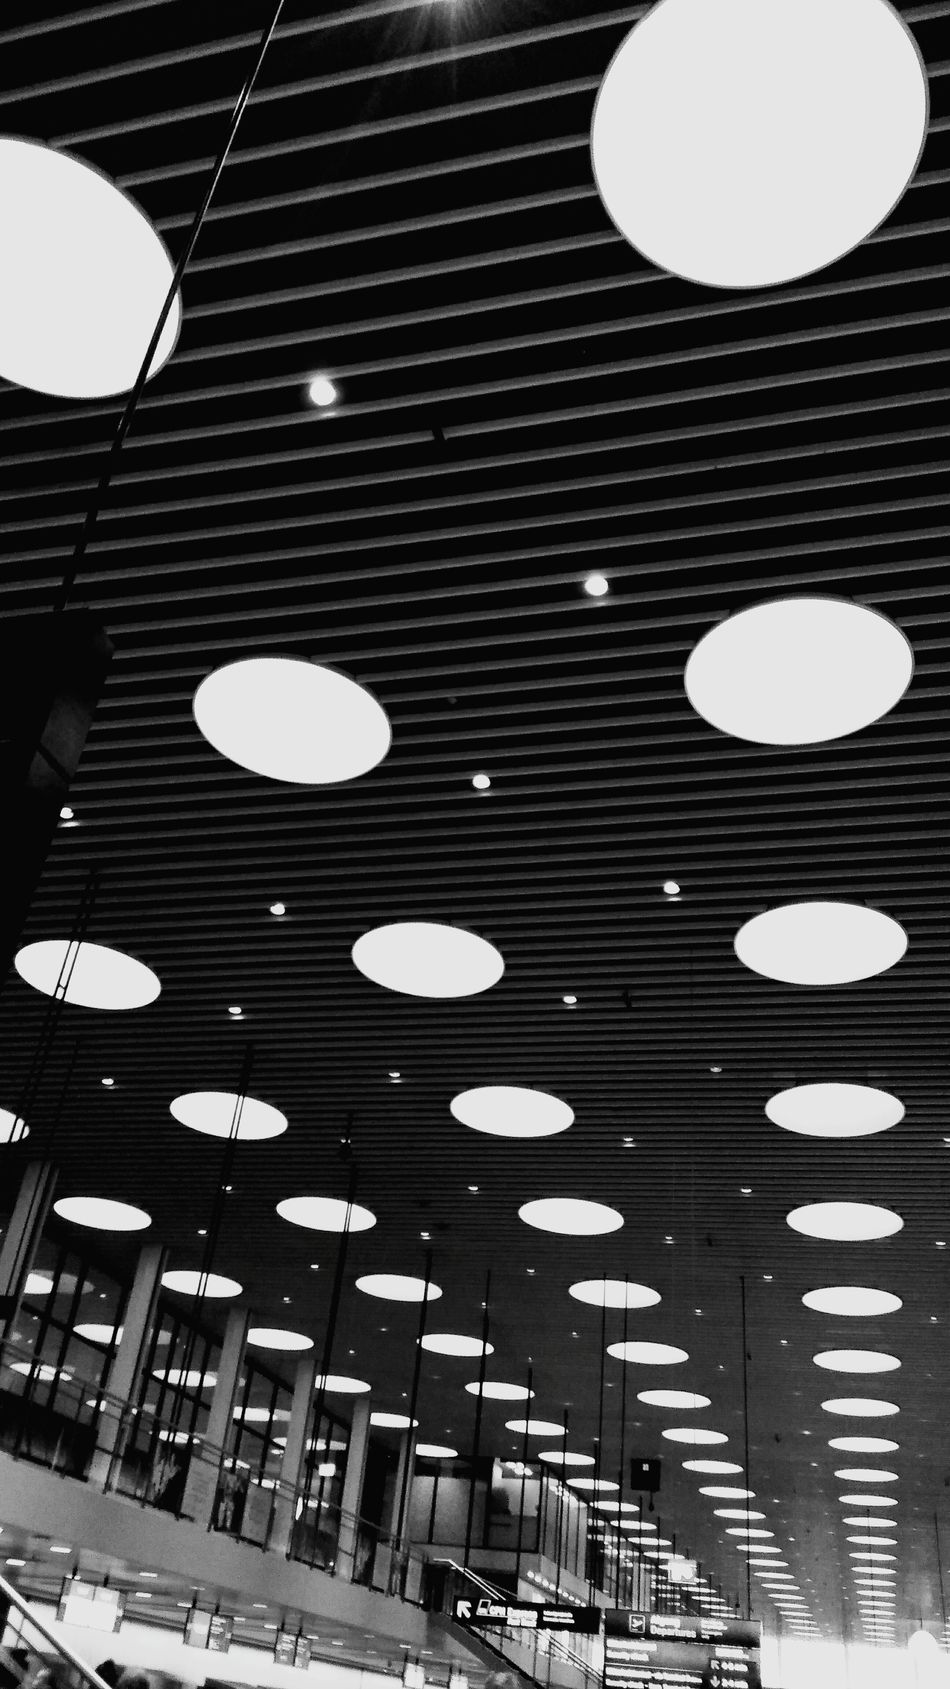 Kopenhavn Patterns Distorted View Welcome To Black Long Goodbye Airport Copenhagen Ceiling Indoors  Architecture Built Structure Low Angle View No People Lights